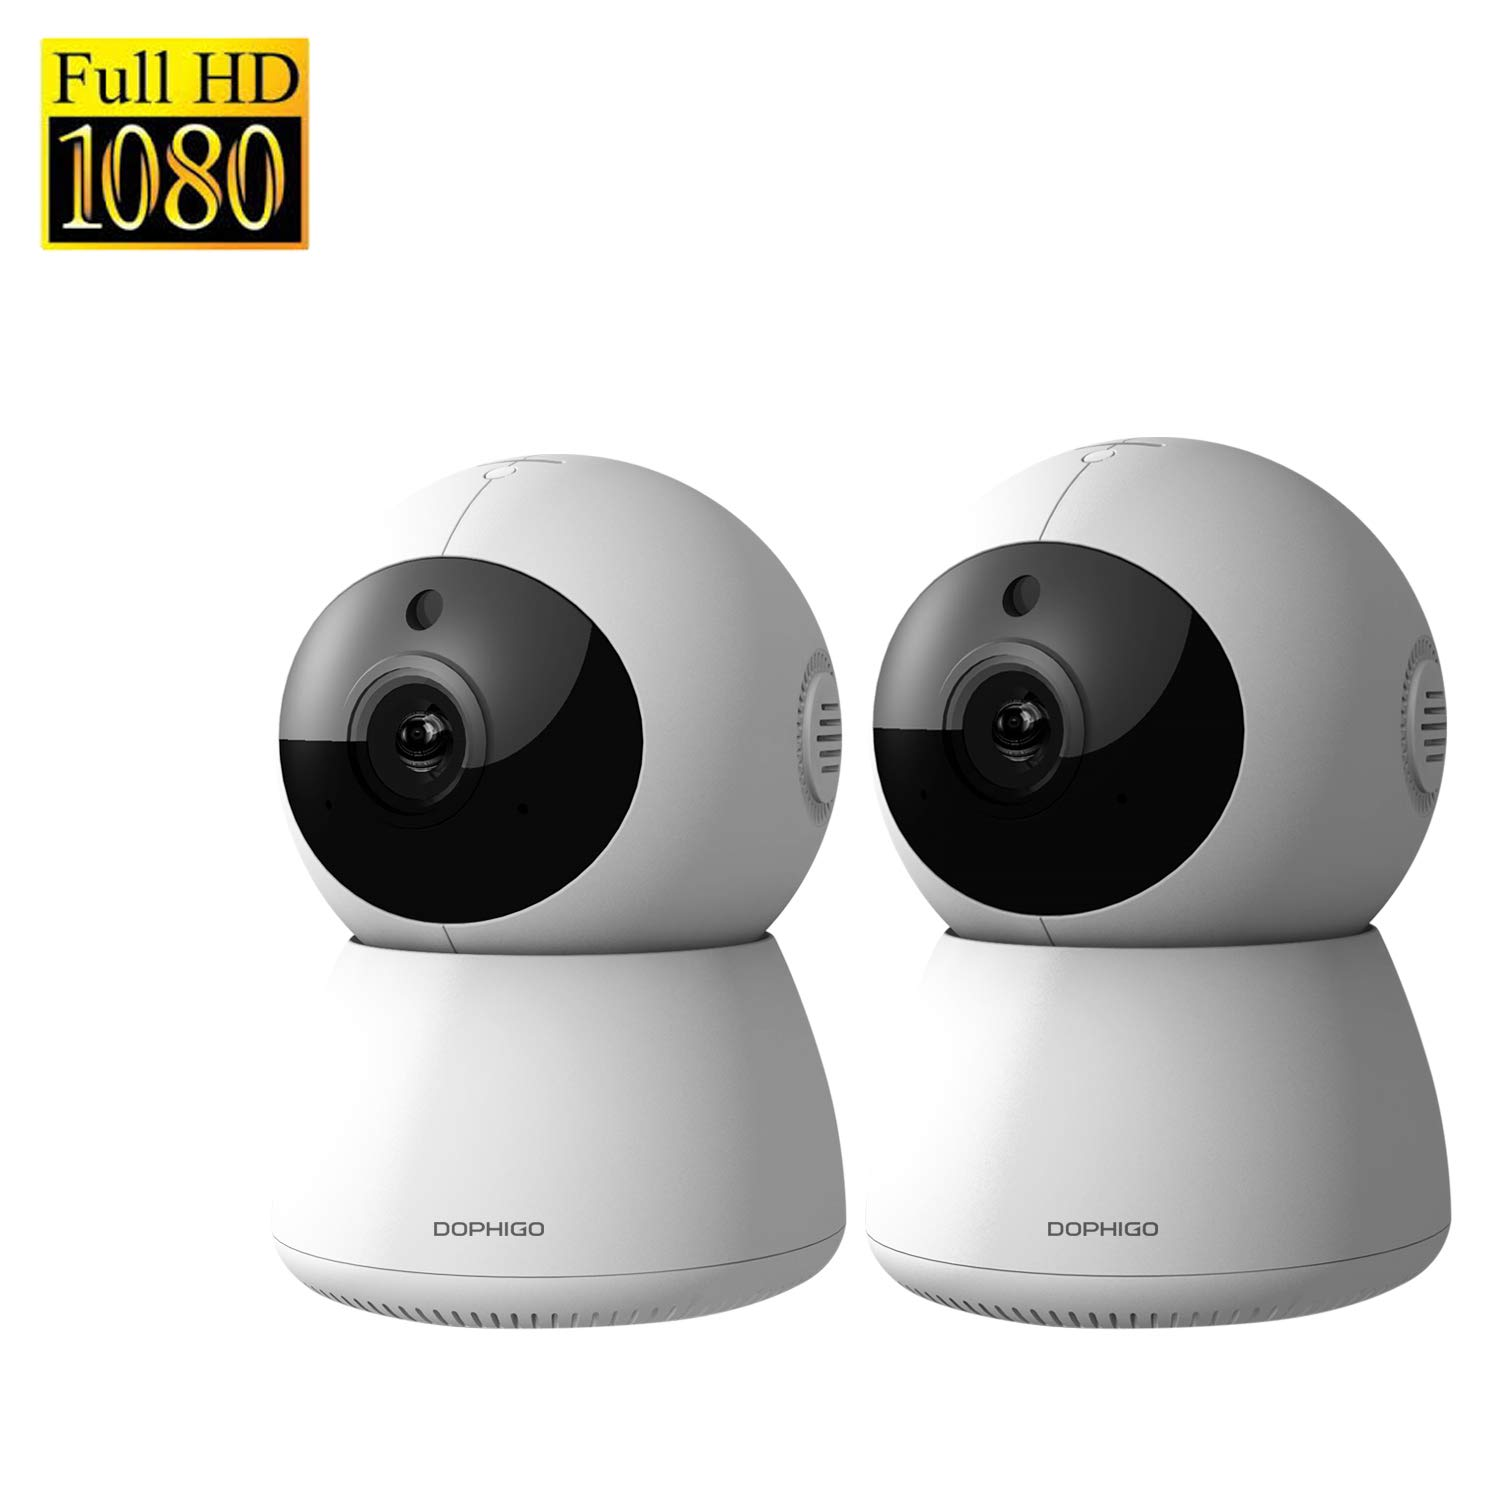 DophiGo 1080P HD Dome 360° Wireless WiFi Baby Monitor Safety Home Security Surveillance IP Cloud Cam Night Vision Camera for Baby Pet Android iOS apps